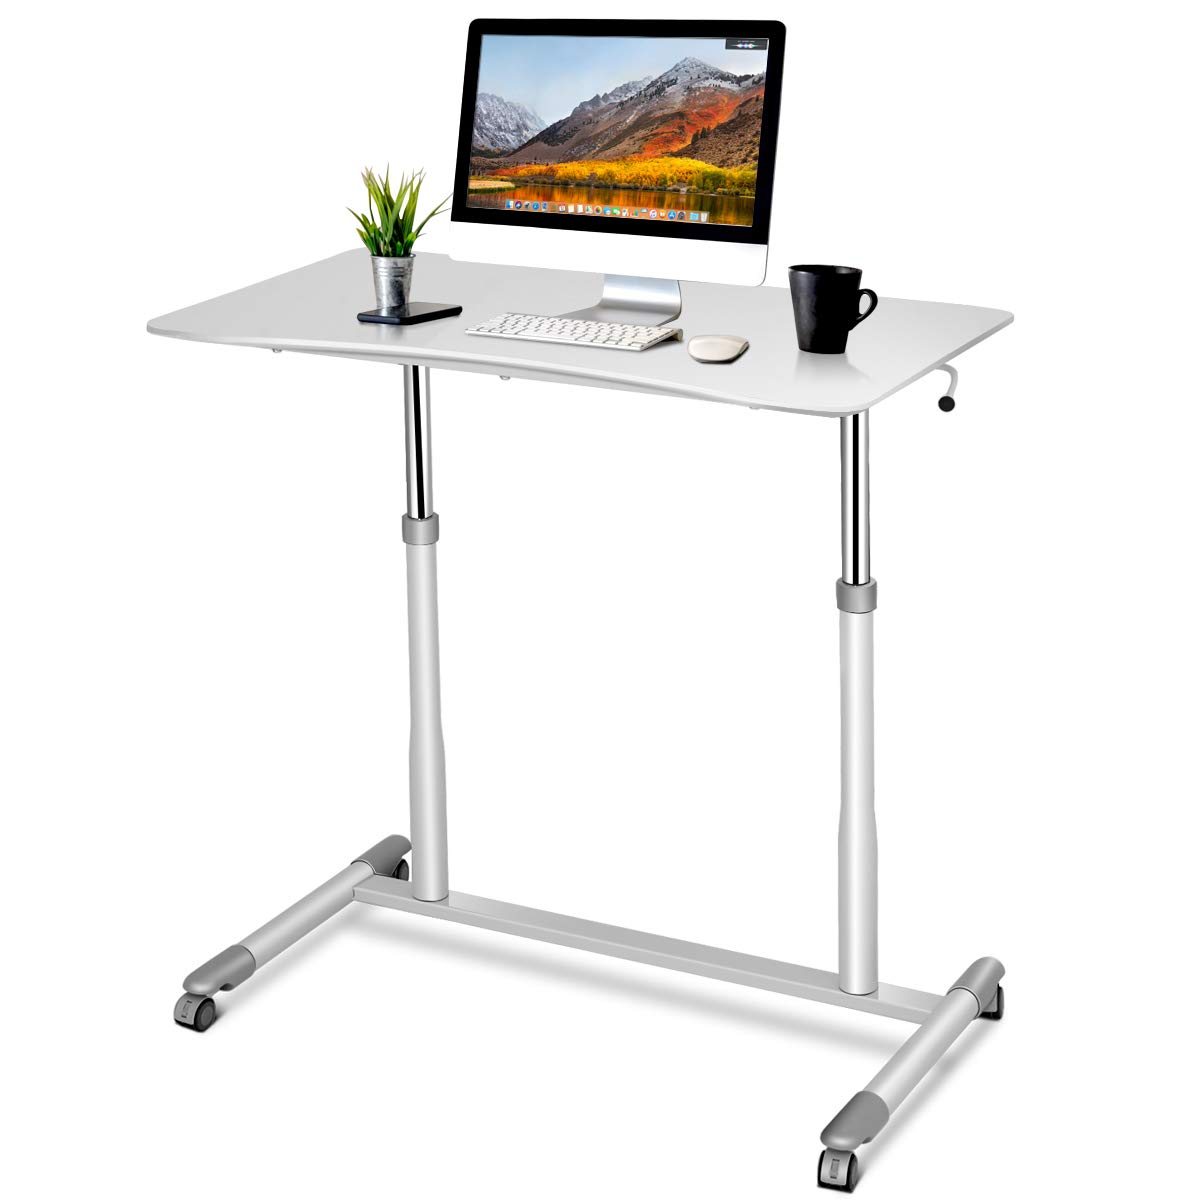 2018 Notebook Computer Desk Bed Learning With Household Lifting Folding Mobile Bedside Table Home Writing Desktop Computer Desk Furniture